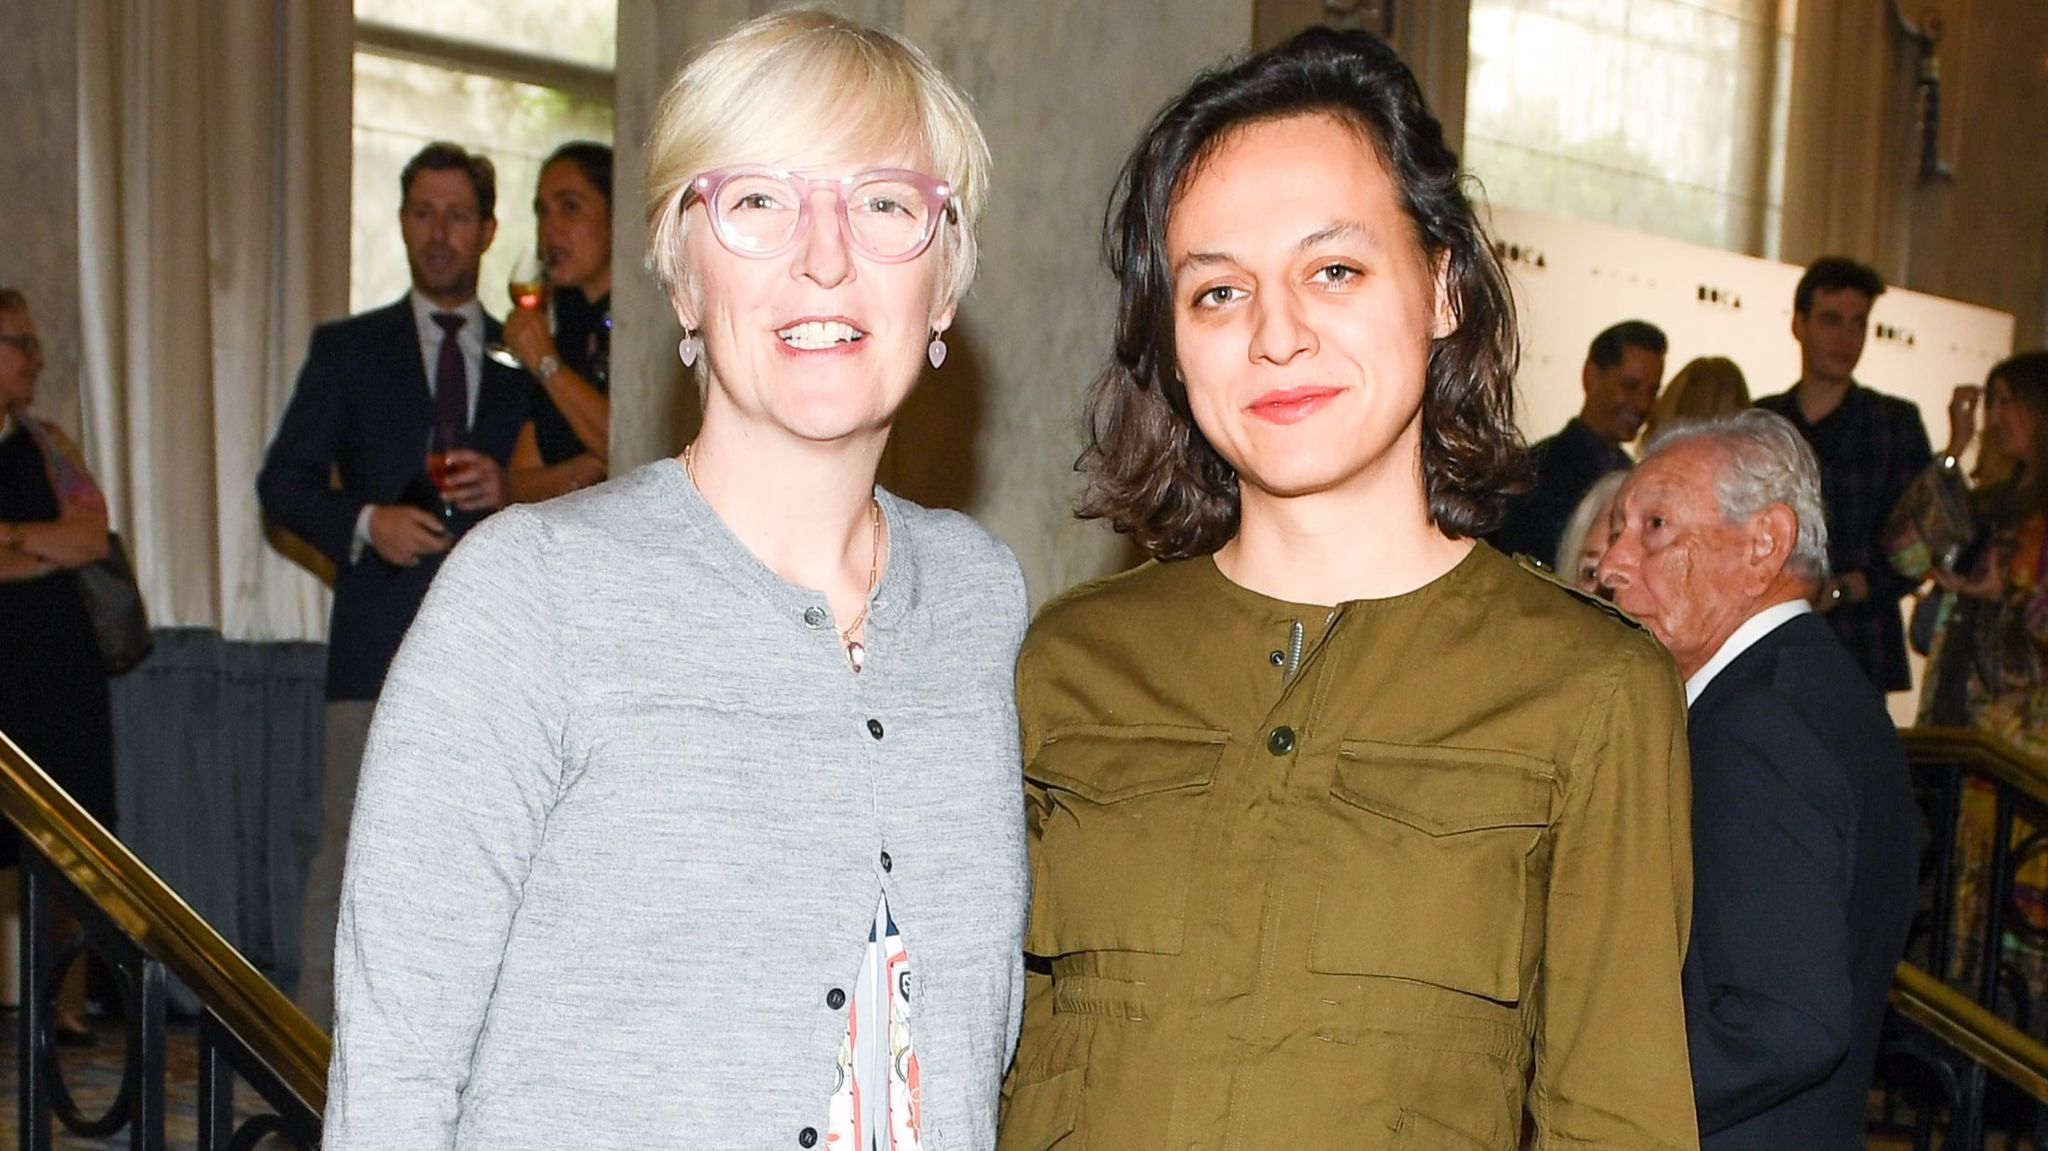 MOCA's chief curator Helen Molesworth and luncheon honoree Tala Madani at MOCA's Distinguished Women in the Arts luncheon.